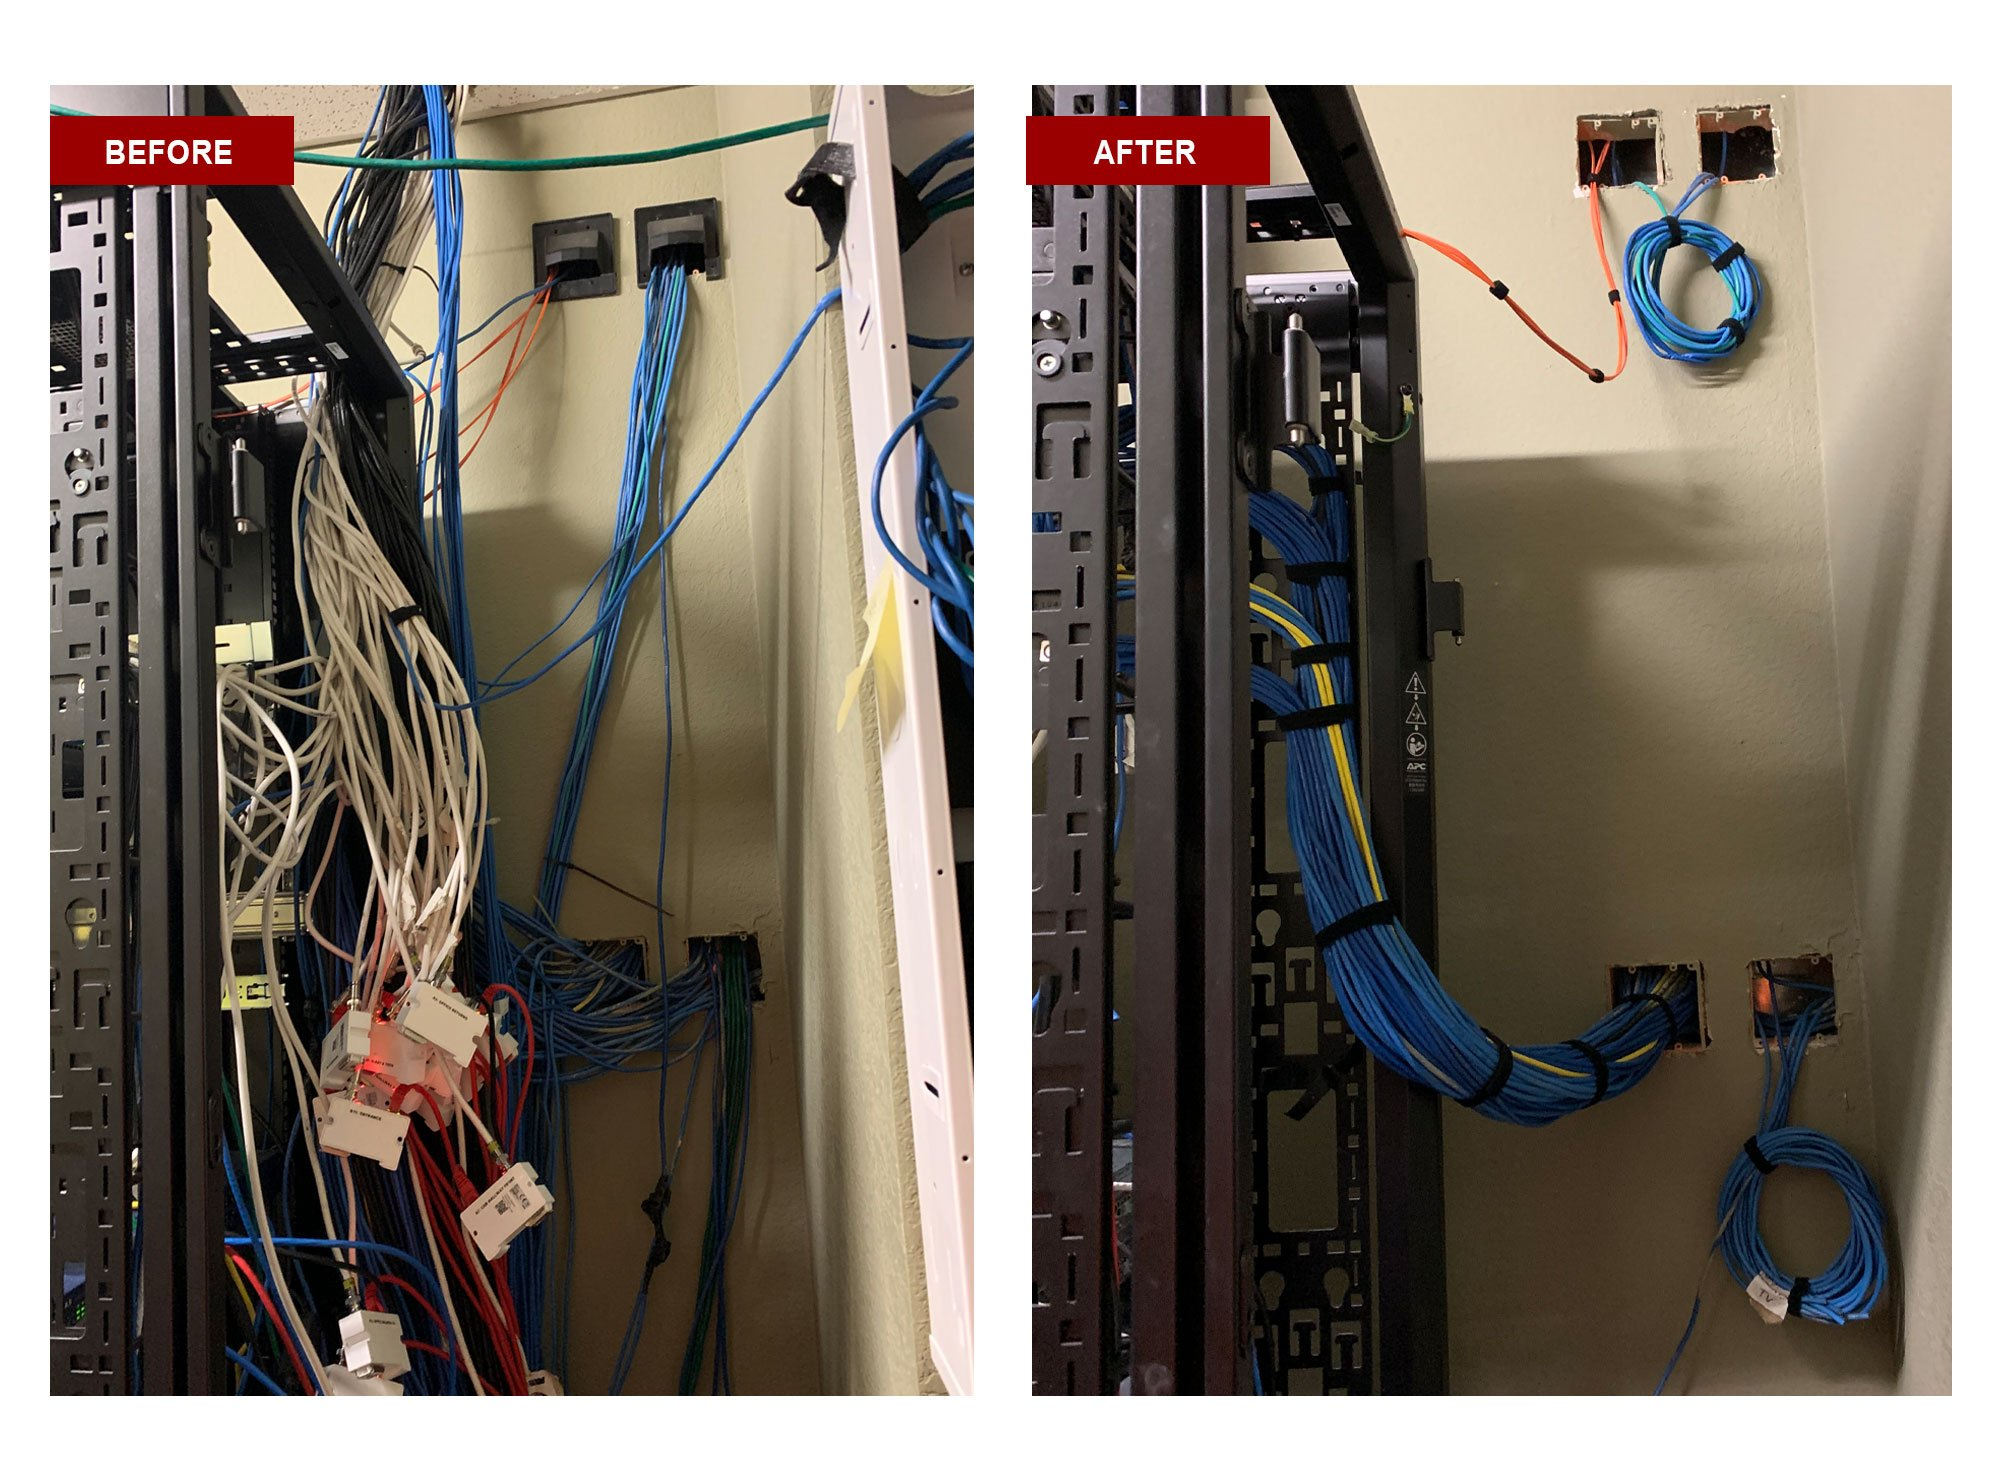 wiring install with cables in place